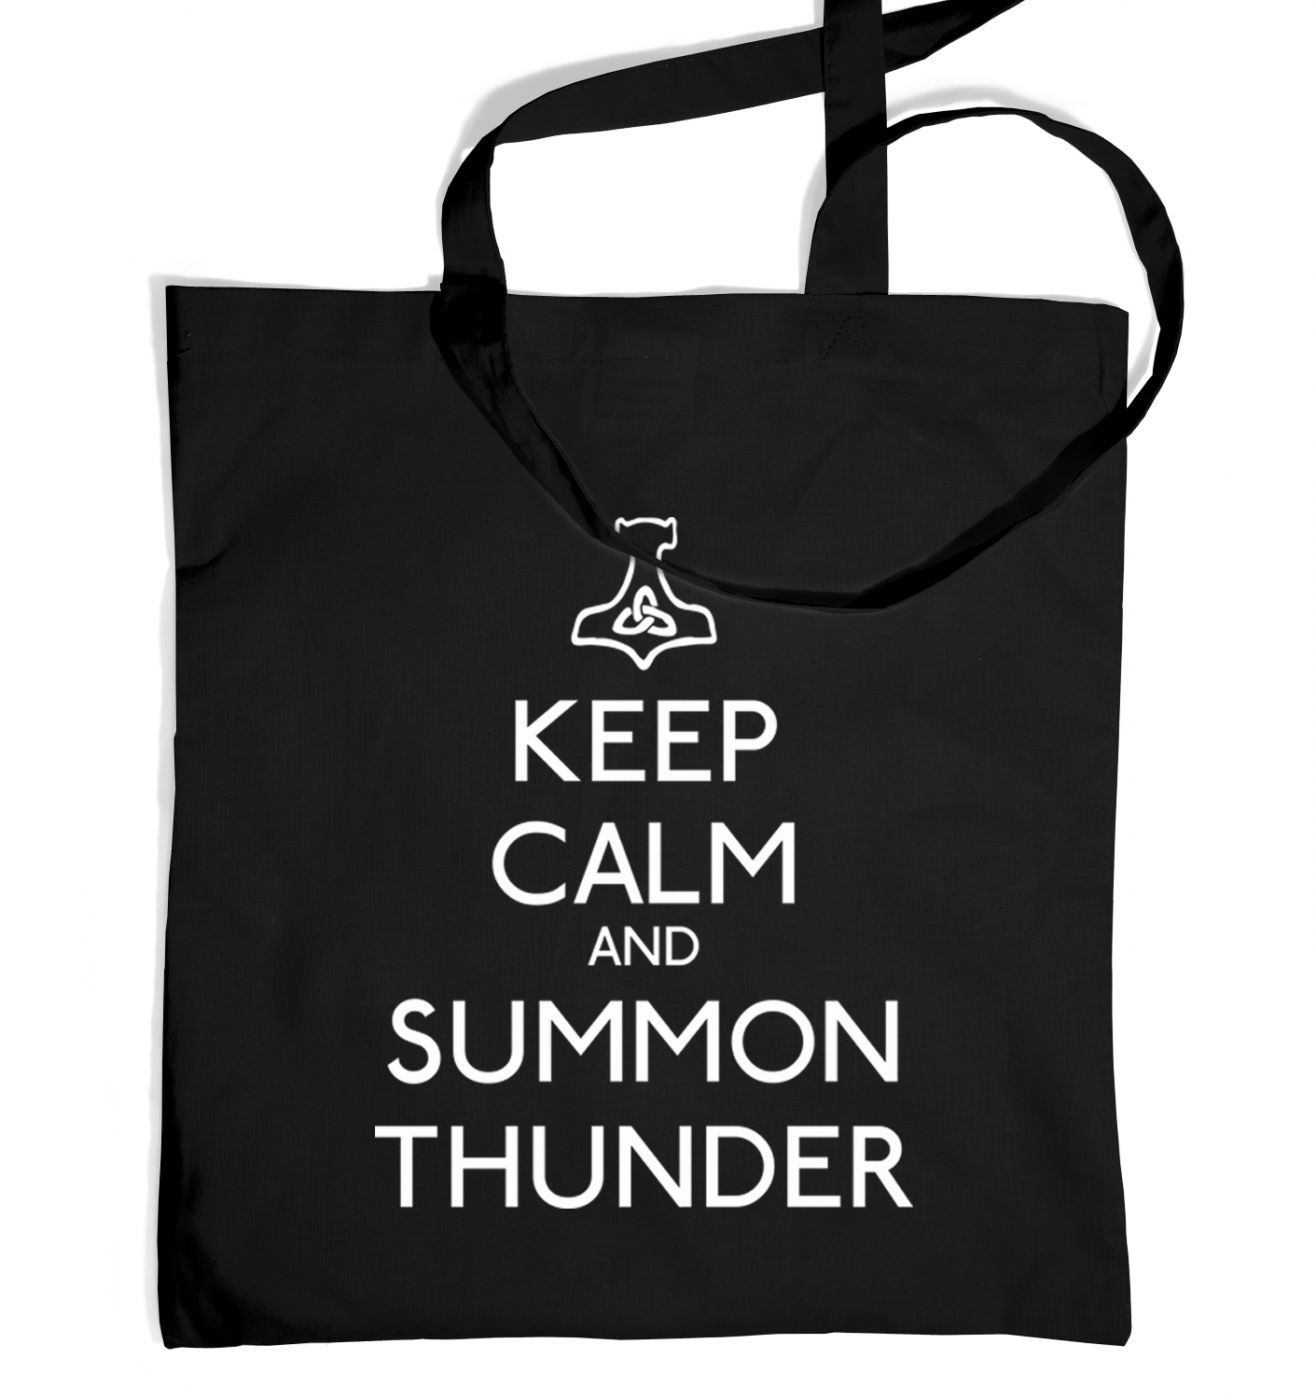 Keep Calm and Summon Thunder tote bag